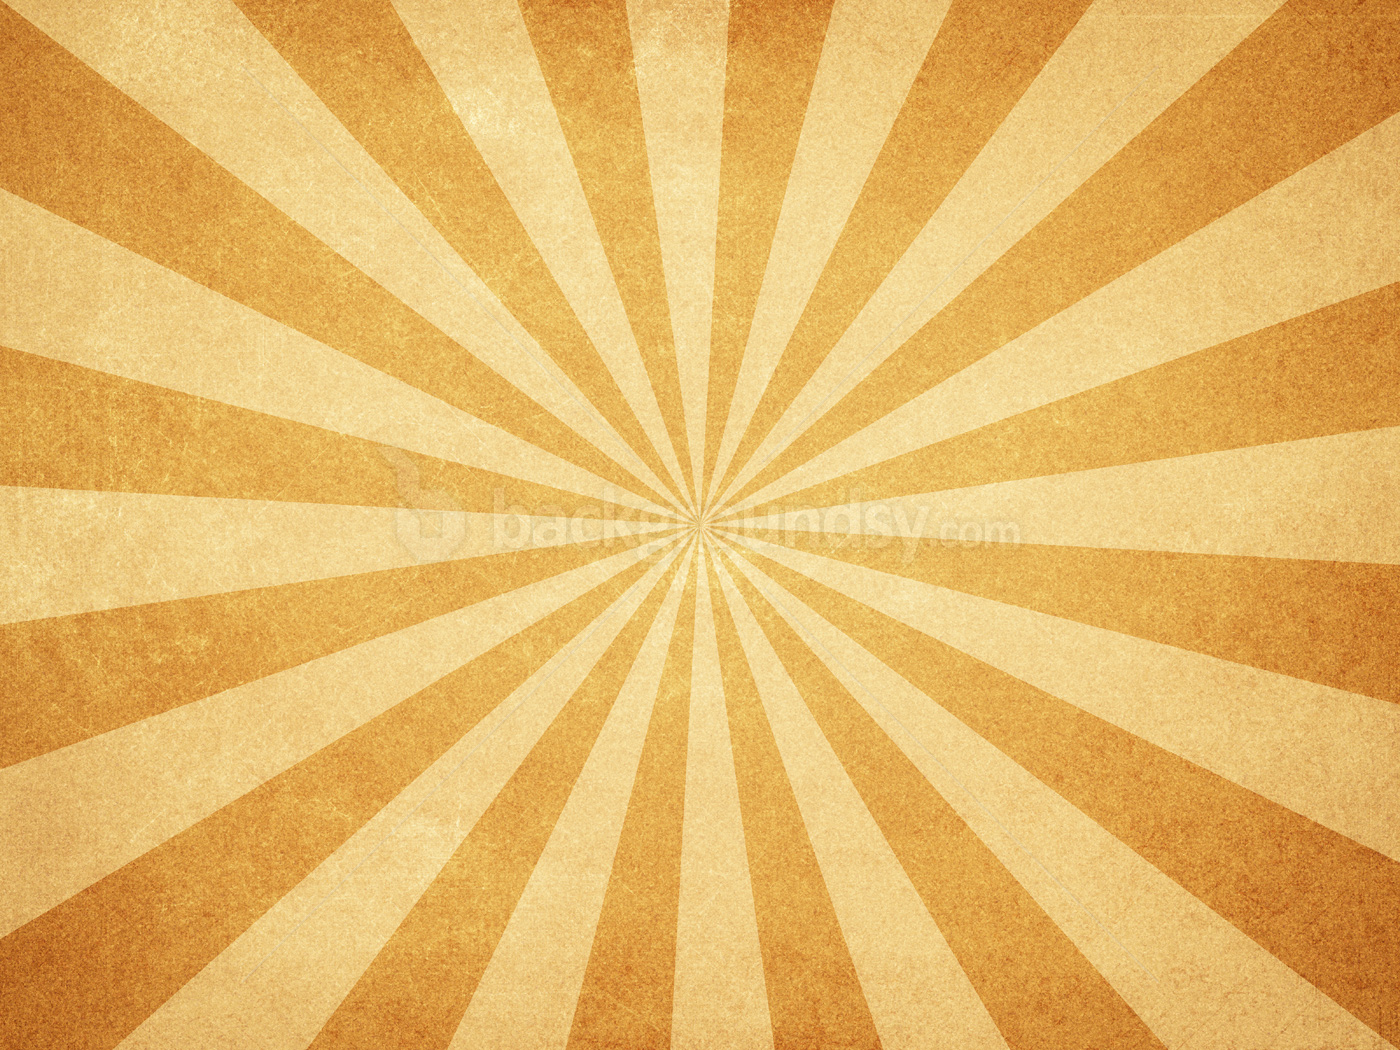 Sunbeam Background 14197